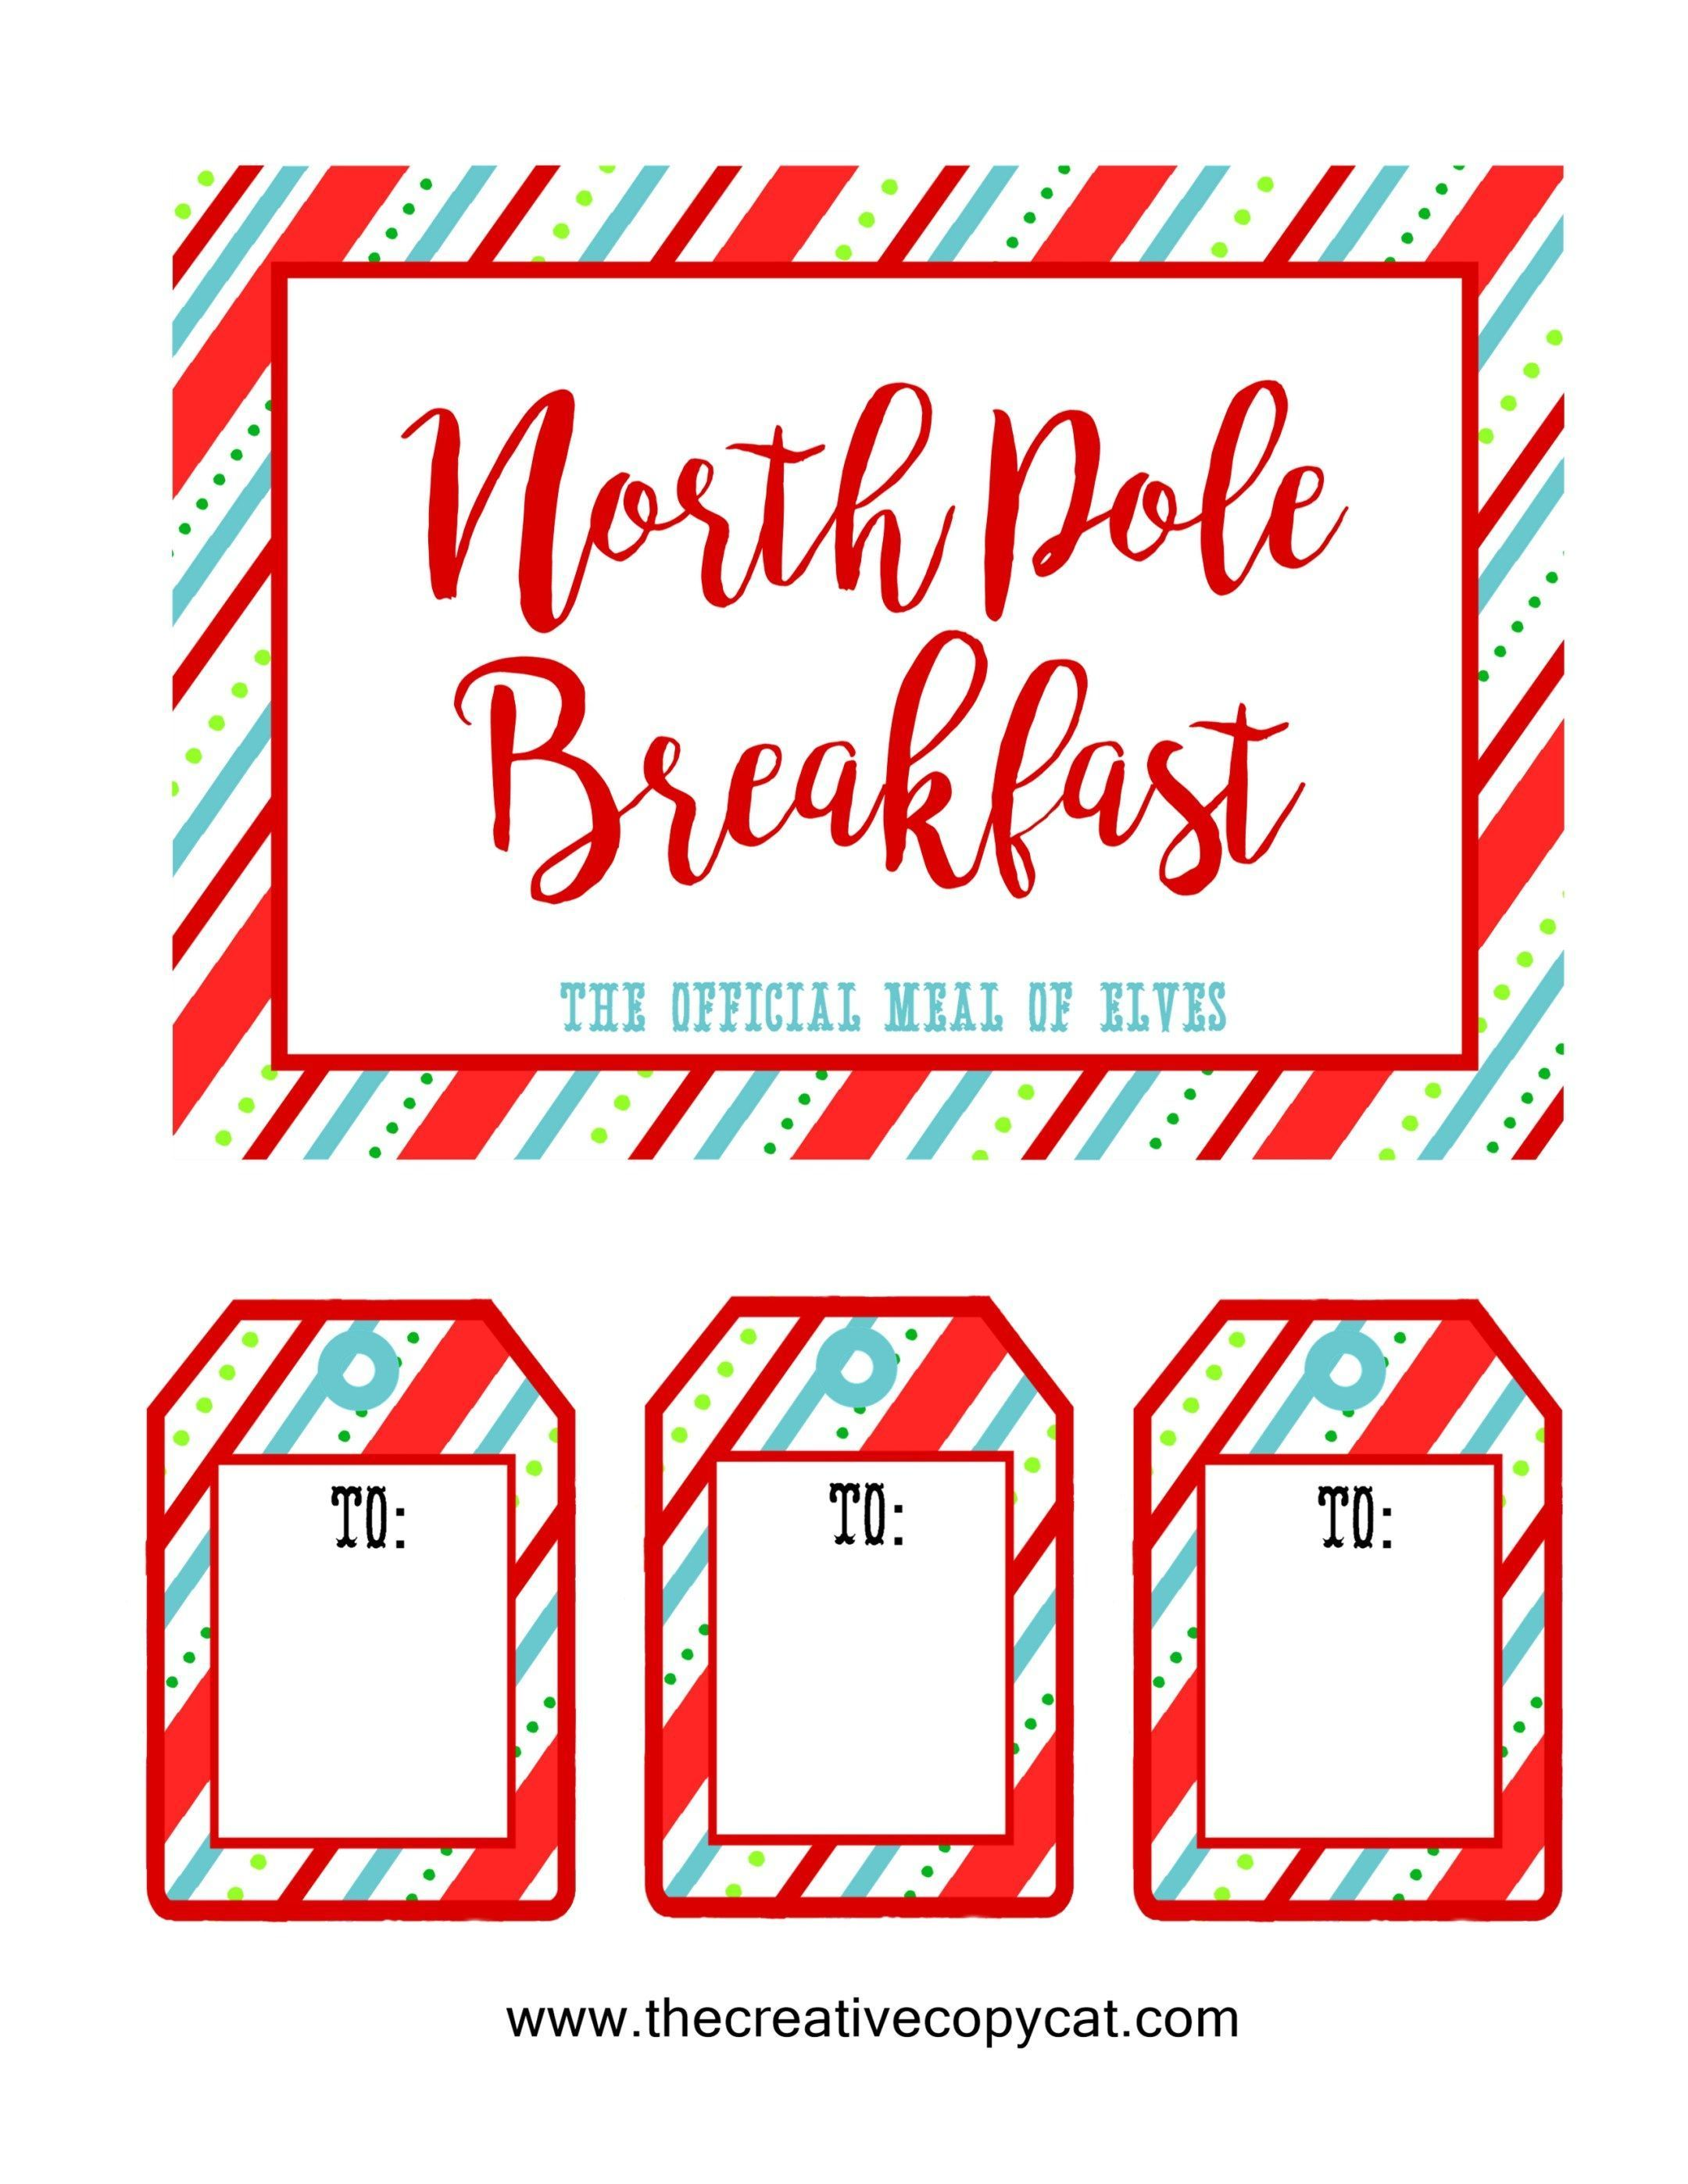 north pole breakfast free printable for elf on the shelf arrival #elfontheshelfarrival north pole breakfast free printable for elf on the shelf arrival #northpolebreakfast north pole breakfast free printable for elf on the shelf arrival #elfontheshelfarrival north pole breakfast free printable for elf on the shelf arrival #northpolebreakfast